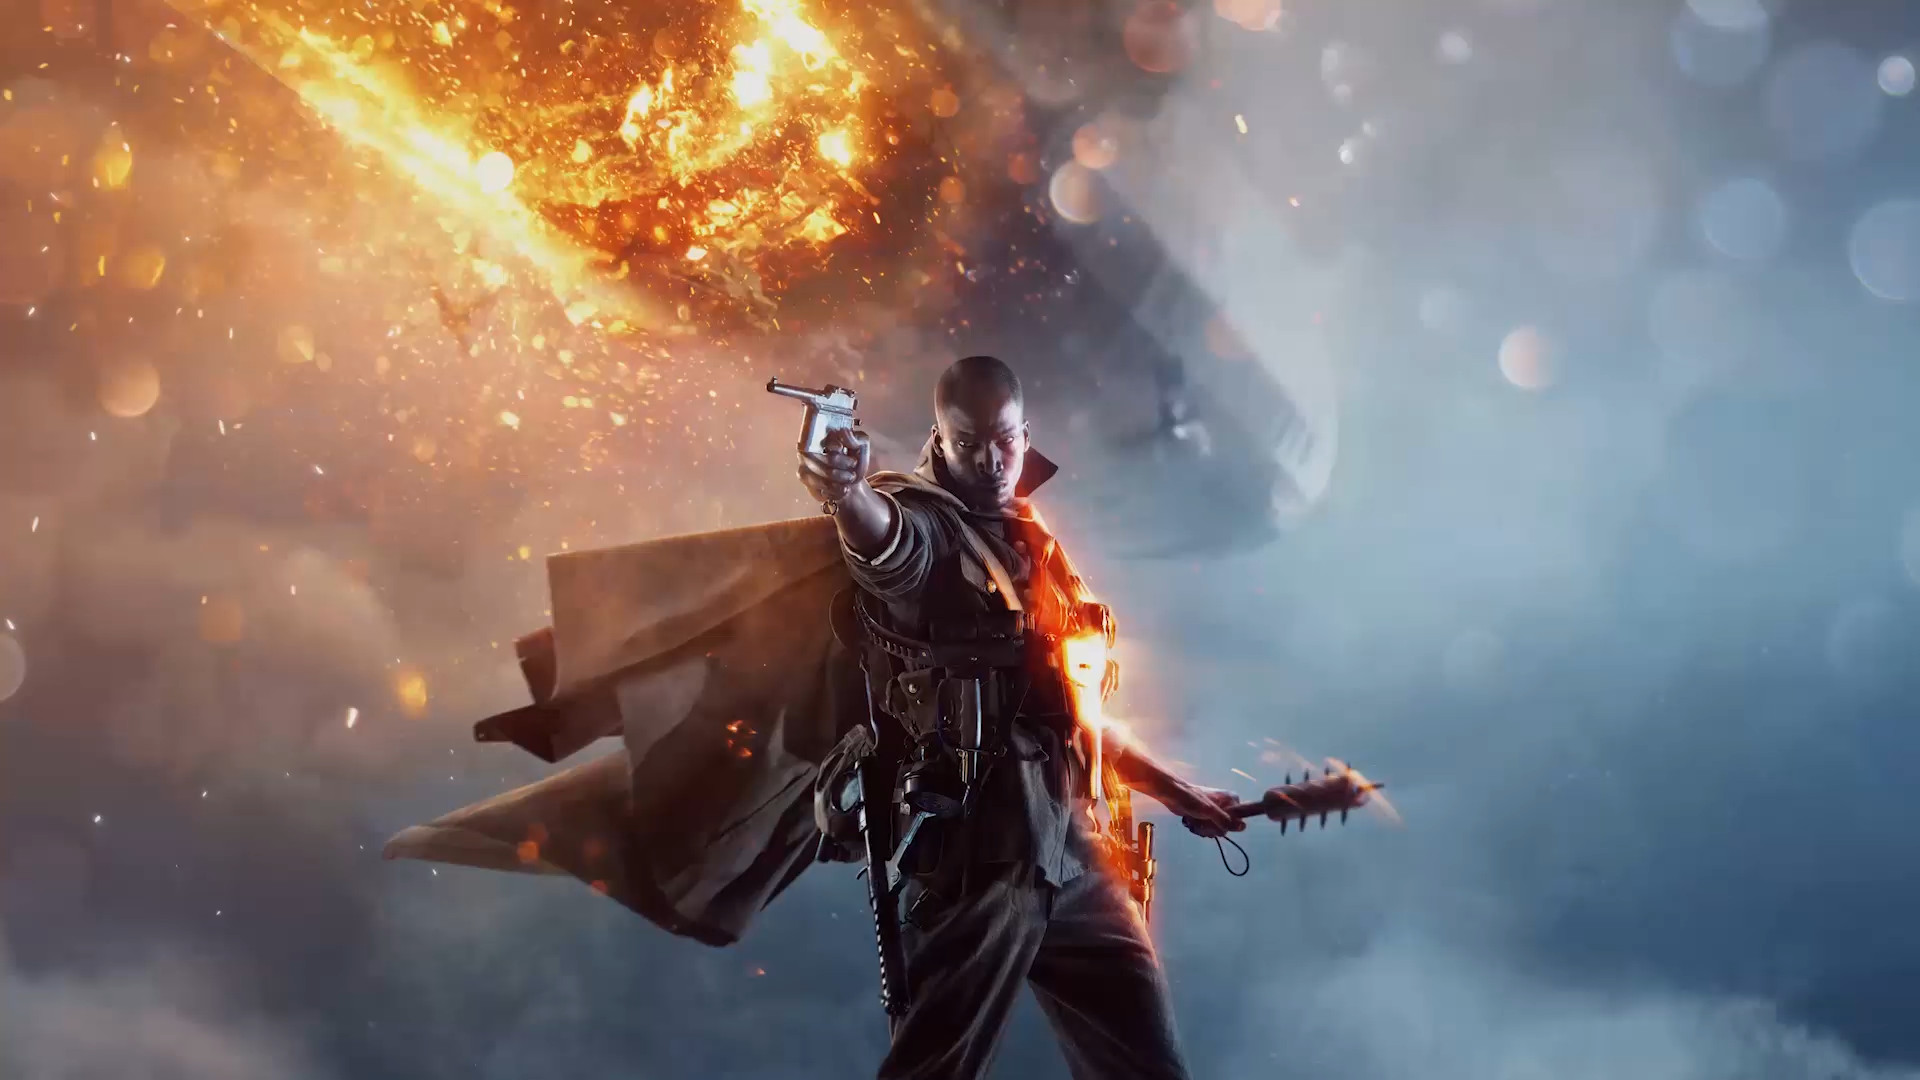 Battlefield 1 Campaign Showcased In Incredible New Trailer rendition1.img  5